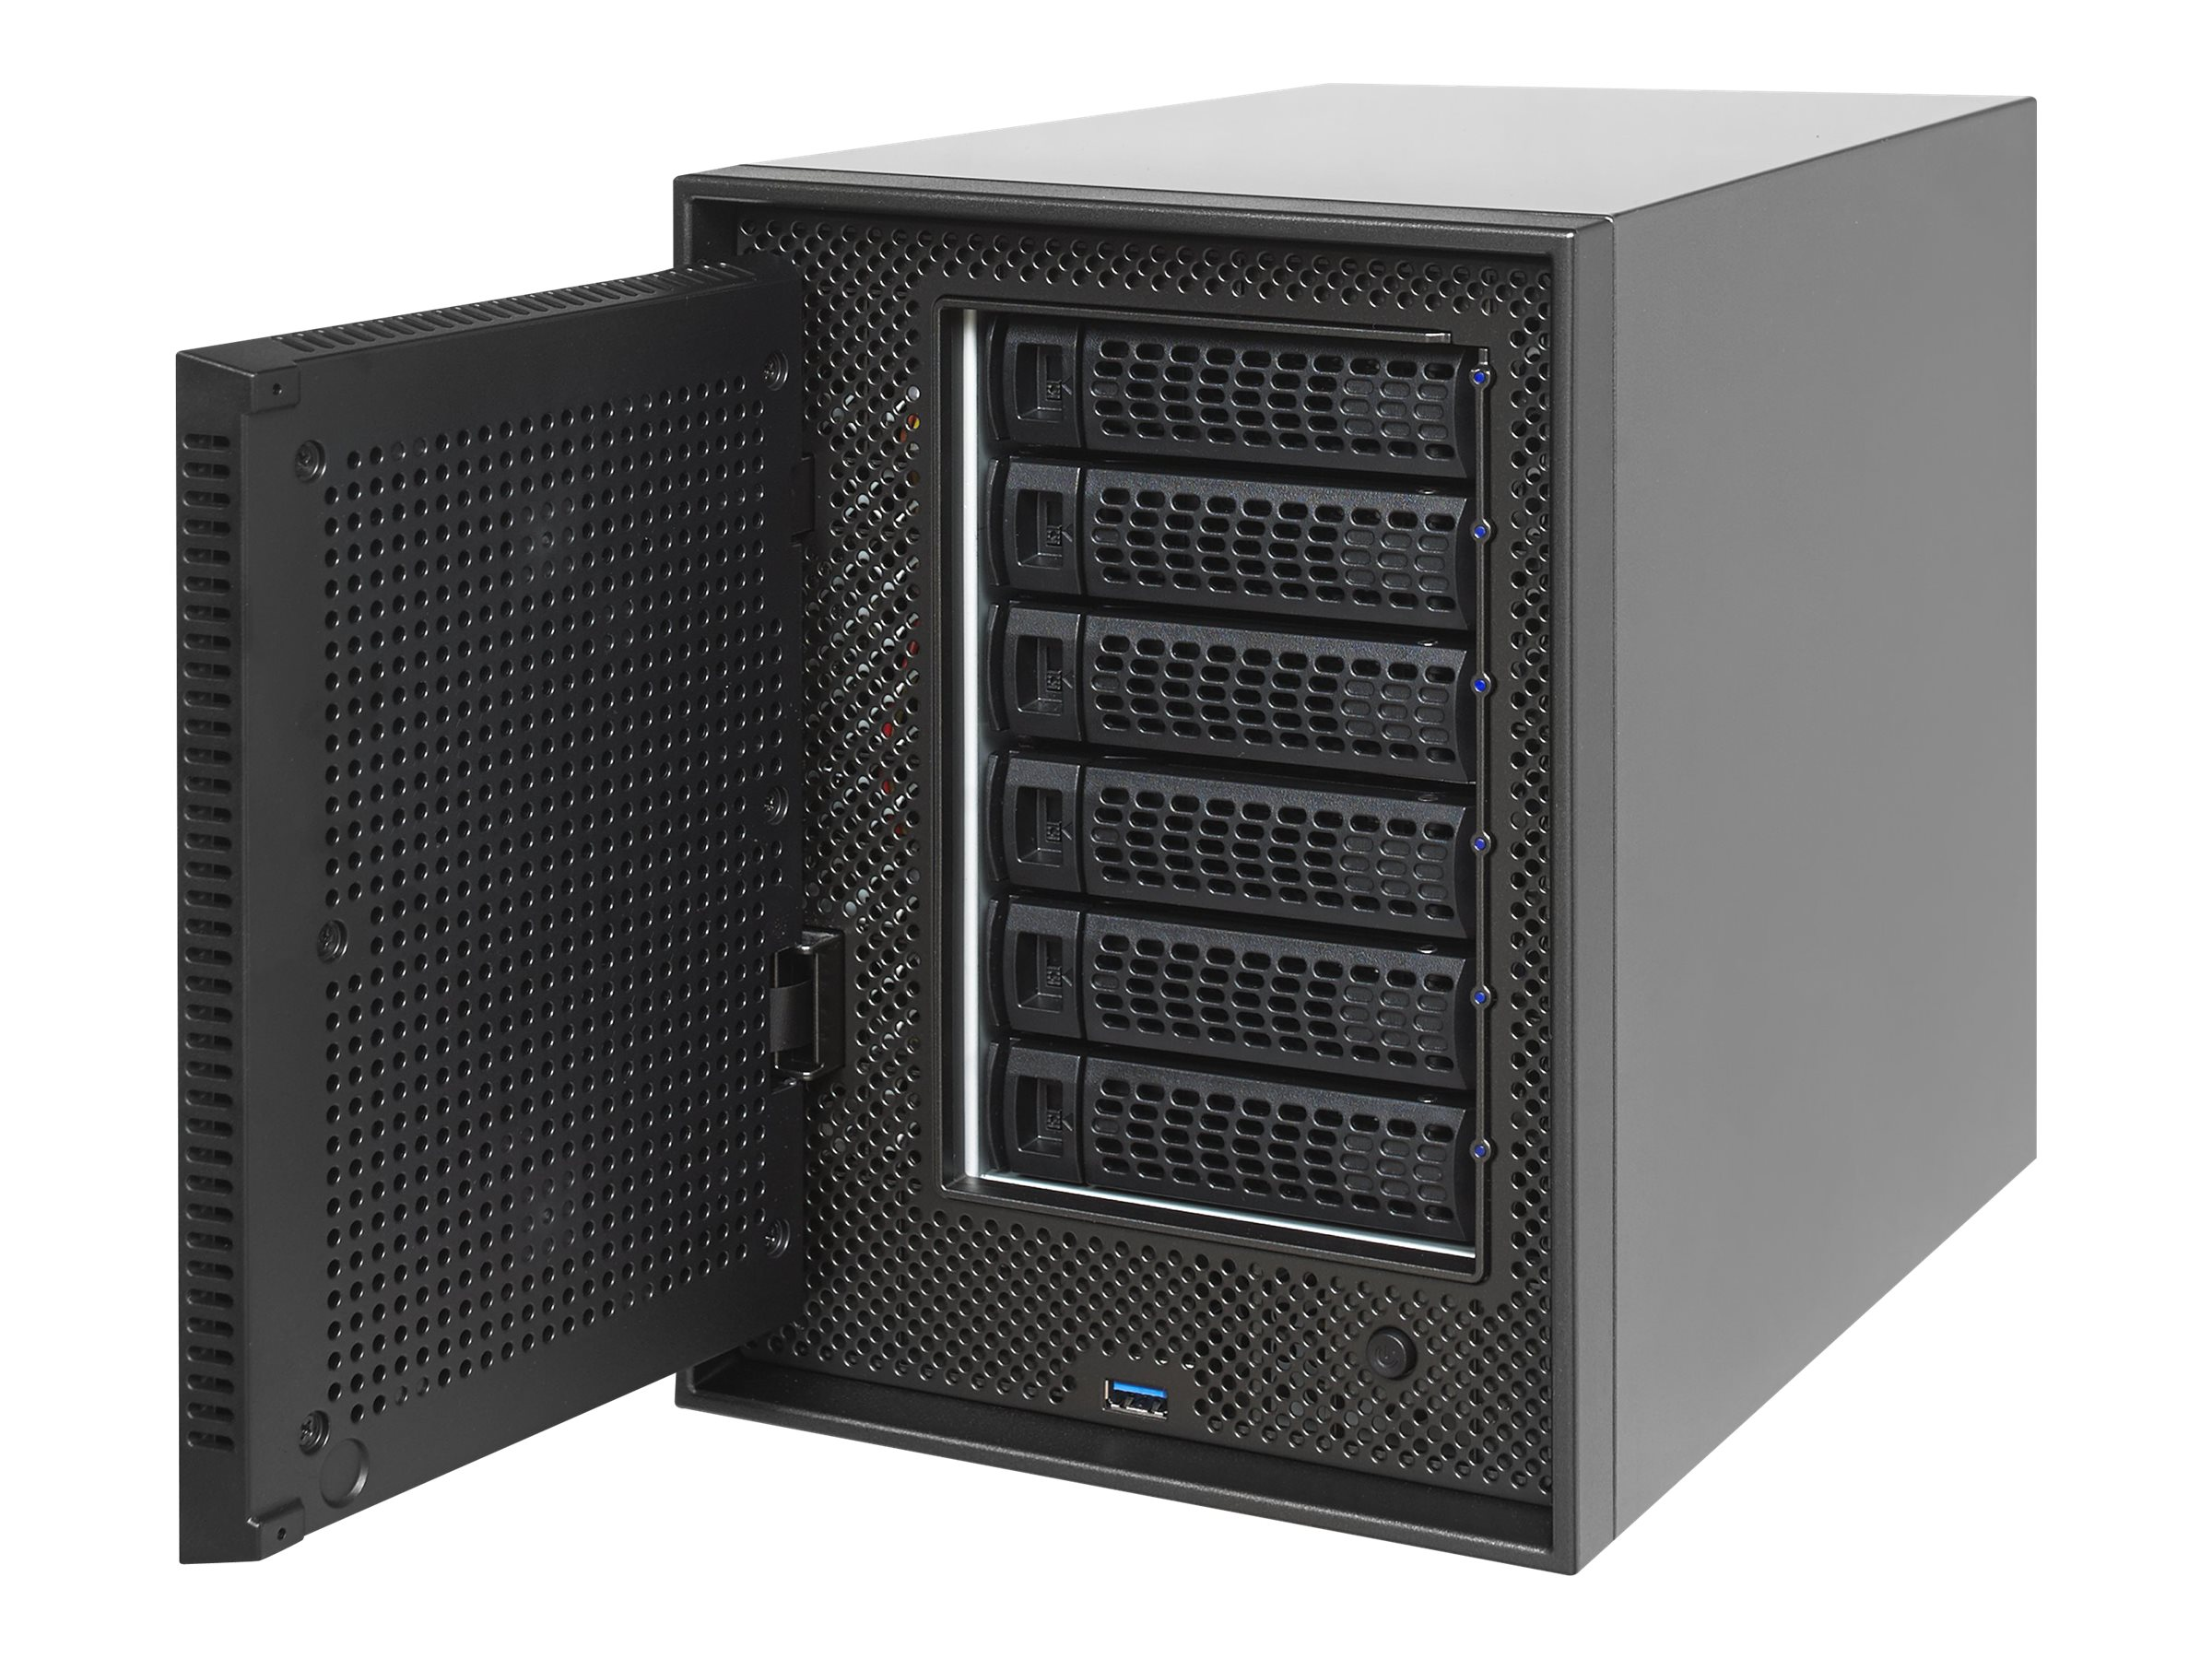 Netgear ReadyNAS 626X 6-Bay Network Storage w  Xeon Quad-Core Server Processor & 6X6TB Hard Drives